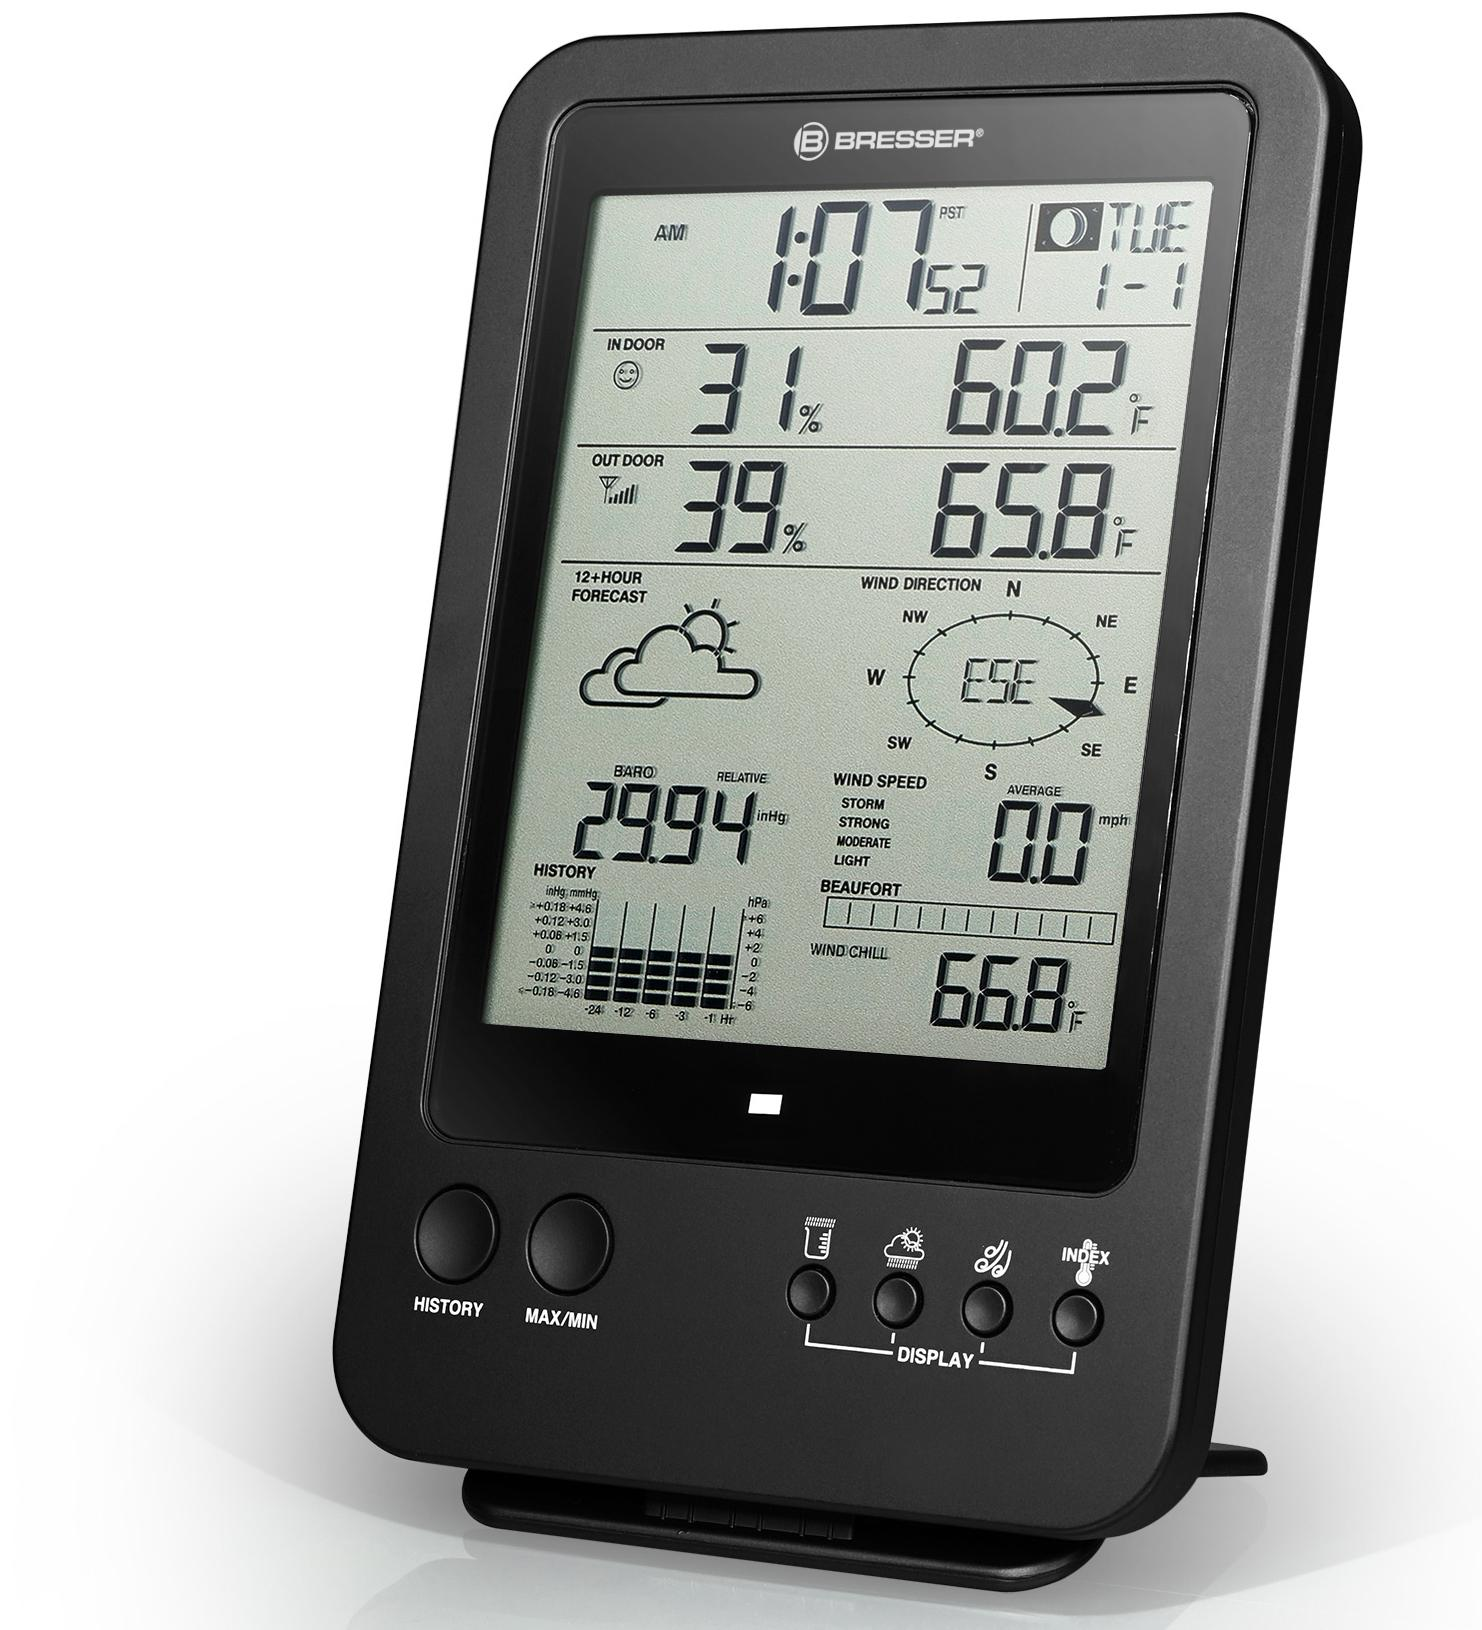 Bresser Wetterstation Wetter Center 5 - in - 1, Schwarz